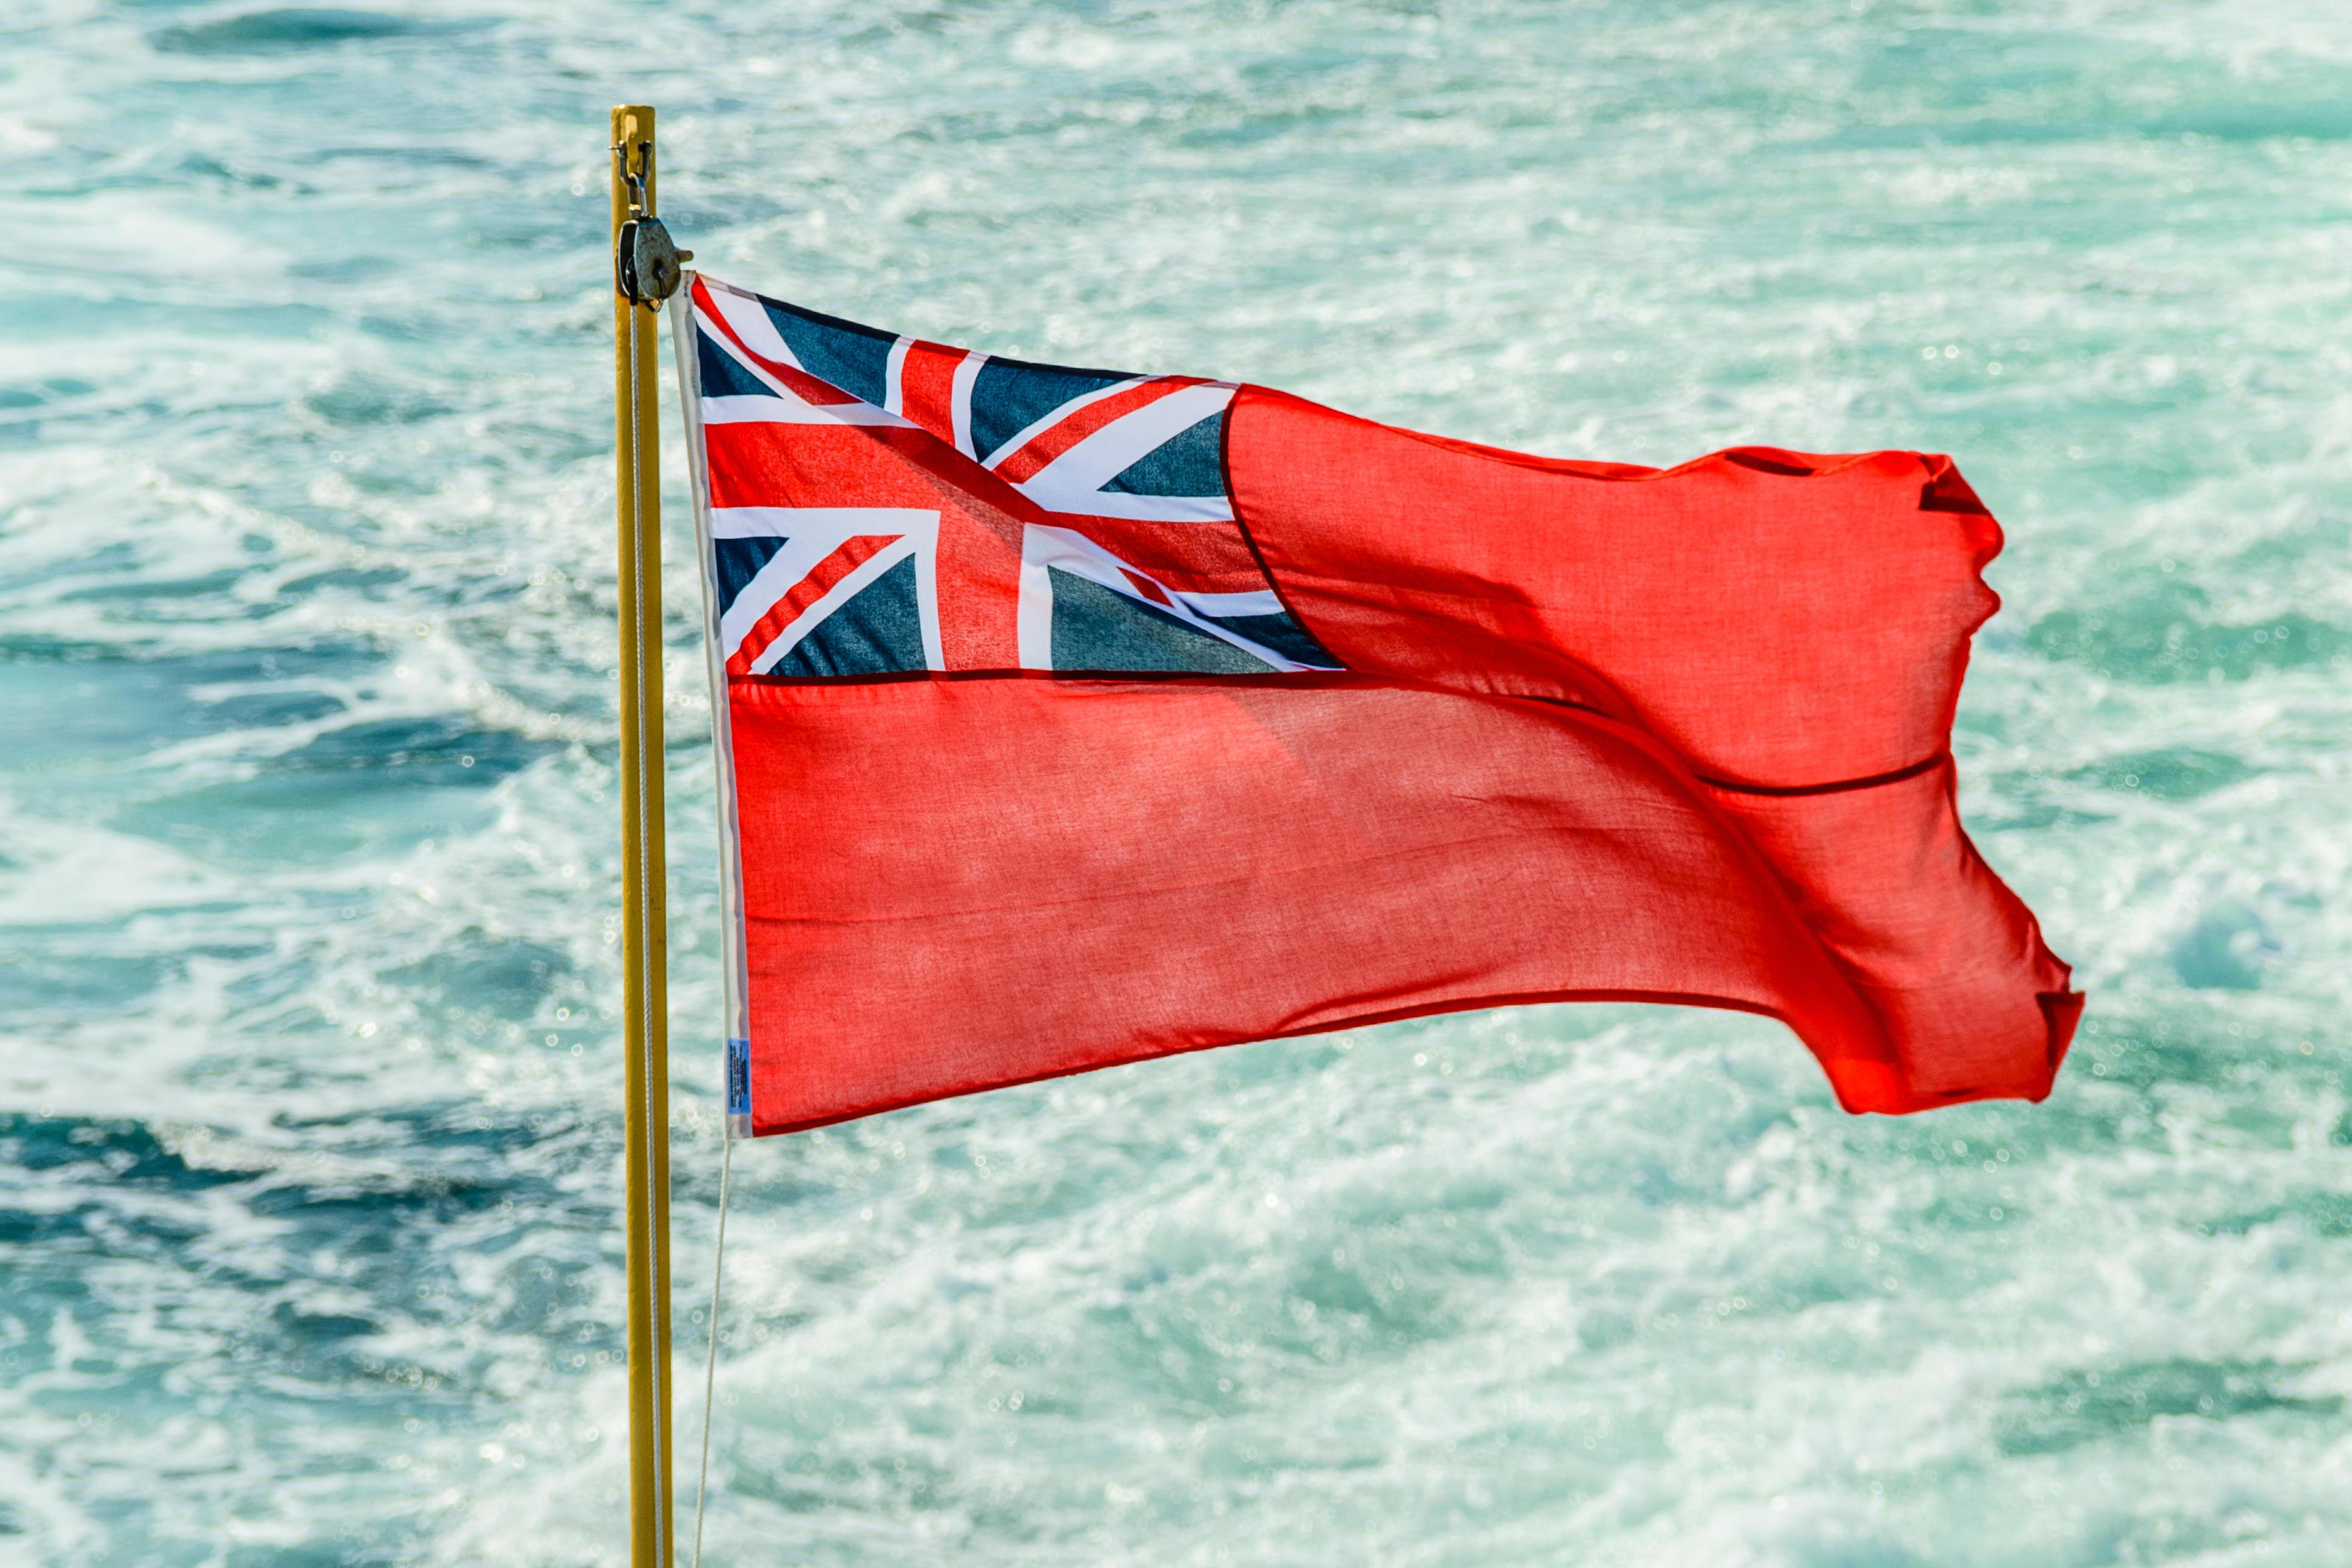 National minimum wage changed for British seafarers